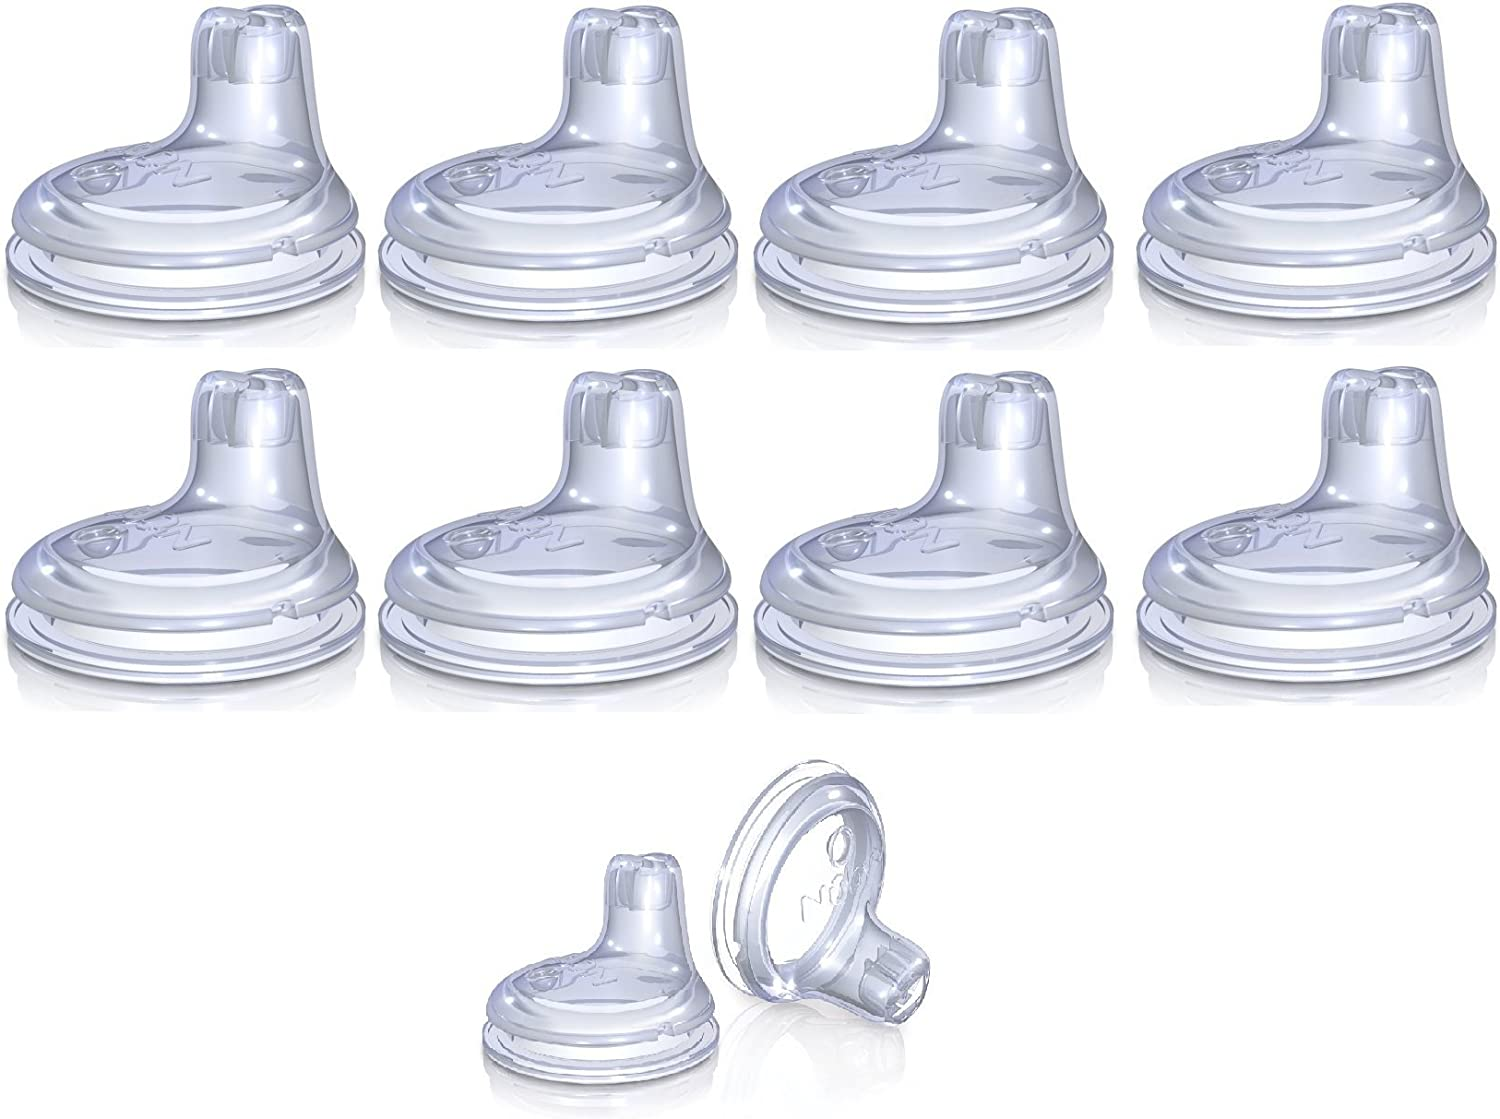 Nuby Replacement Silicone Spouts 10 Pack